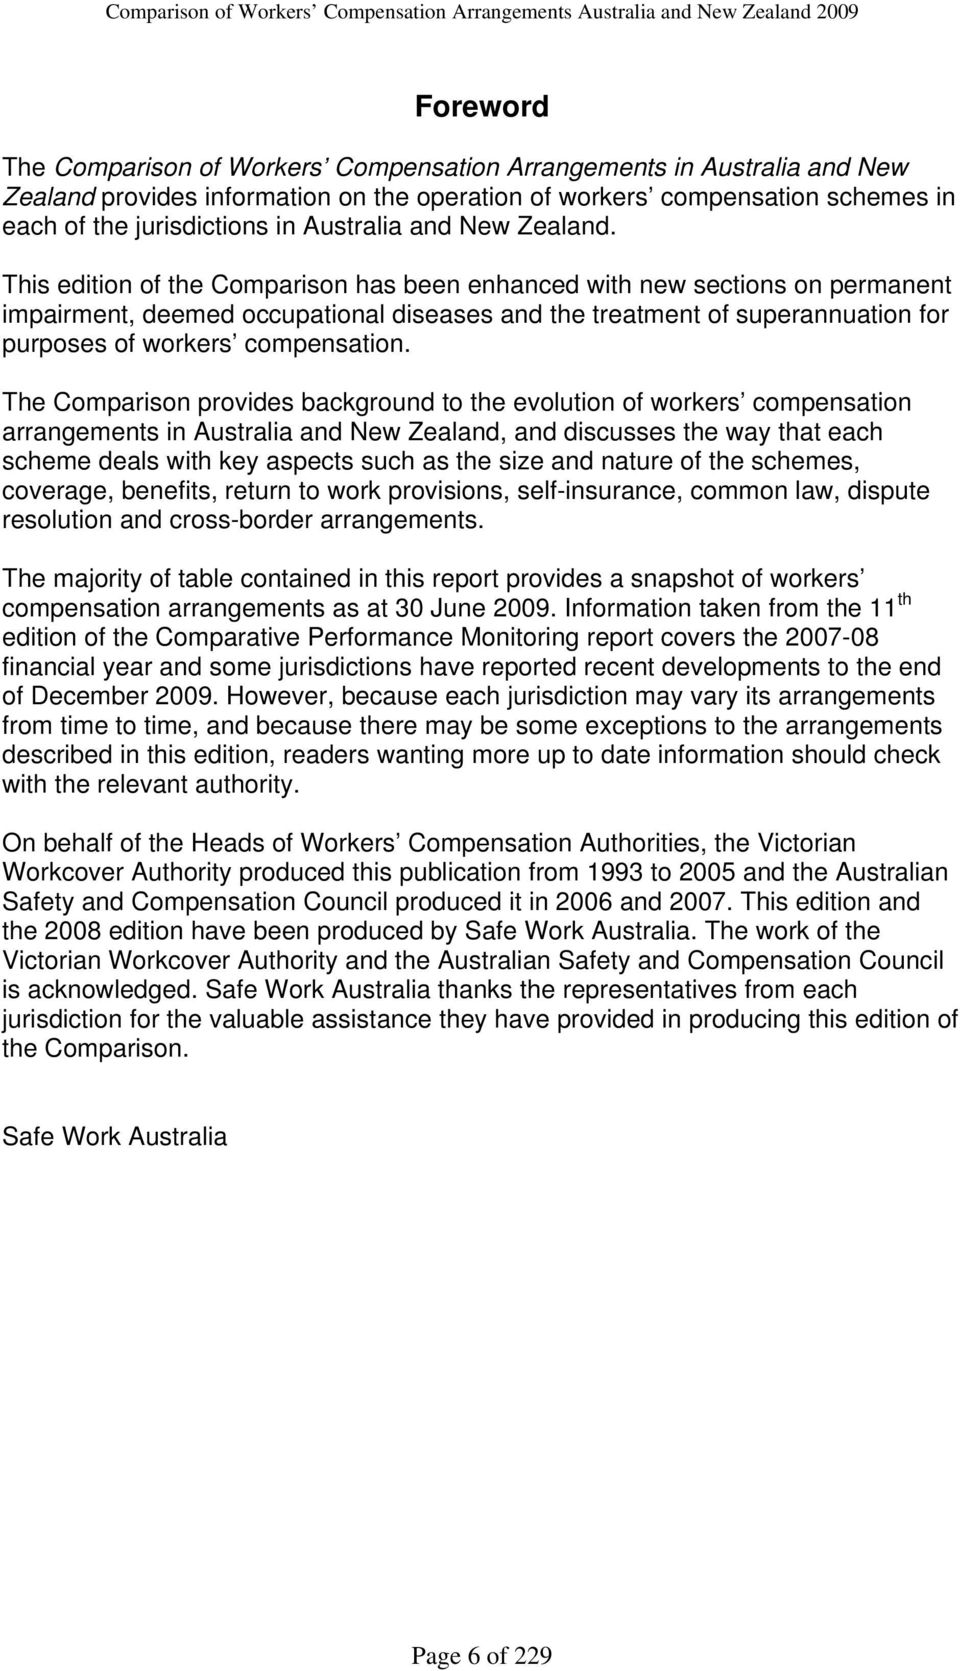 This edition of the Comparison has been enhanced with new sections on permanent impairment, deemed occupational diseases and the treatment of superannuation for purposes of workers compensation.